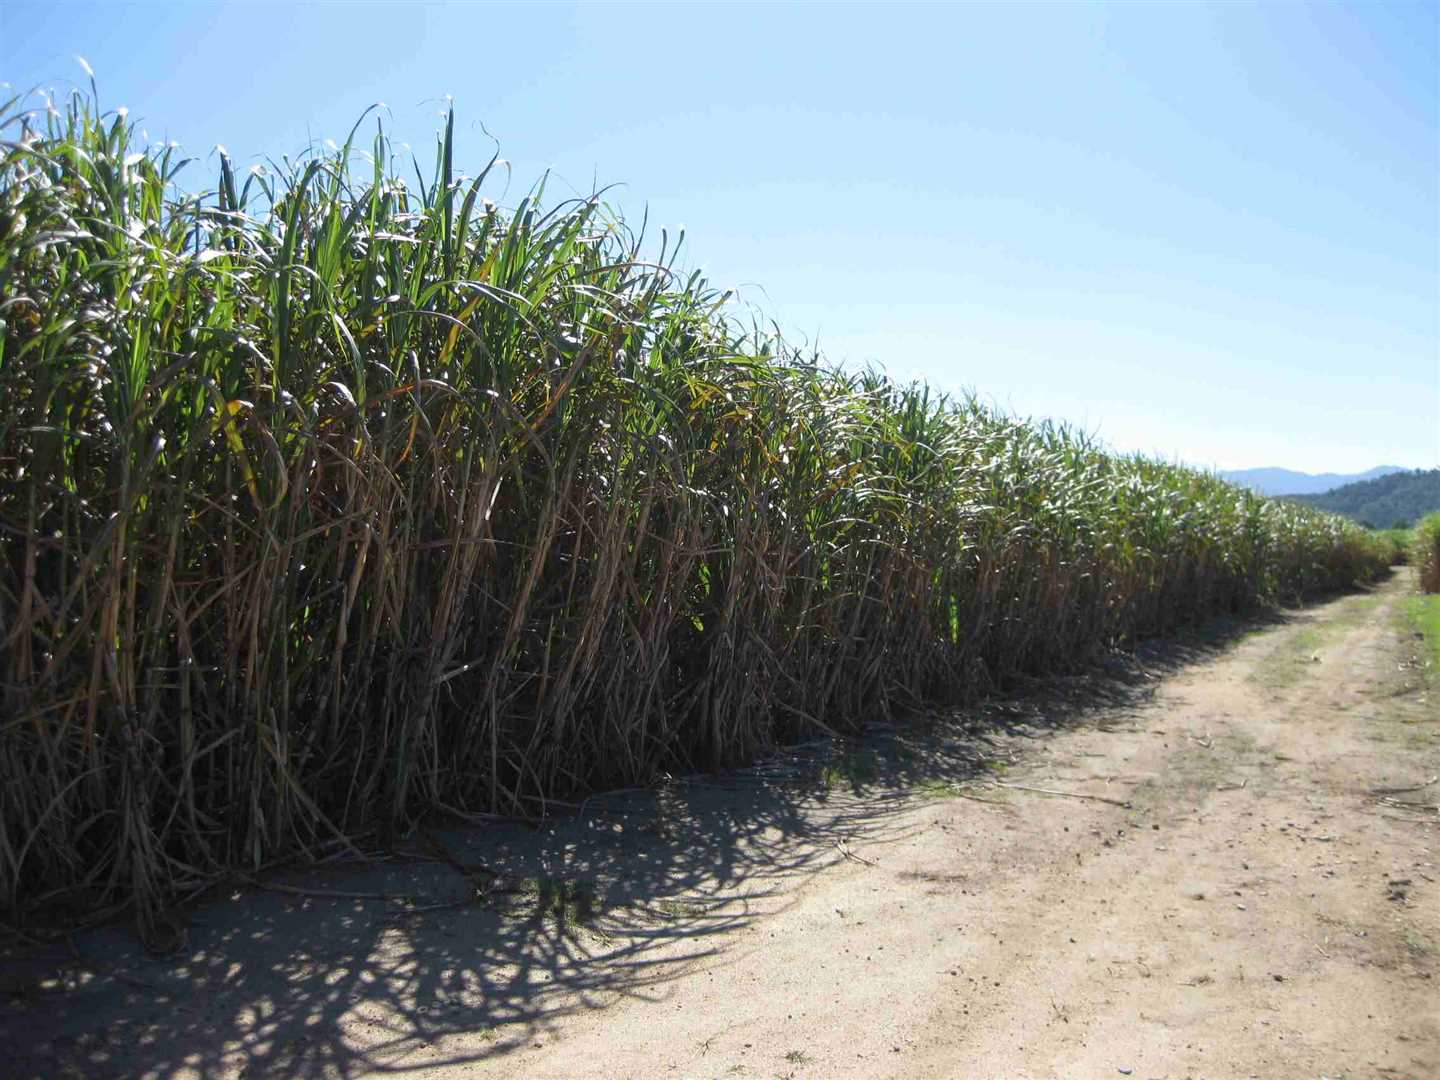 View of part of property showing part of cane crop, photo 5